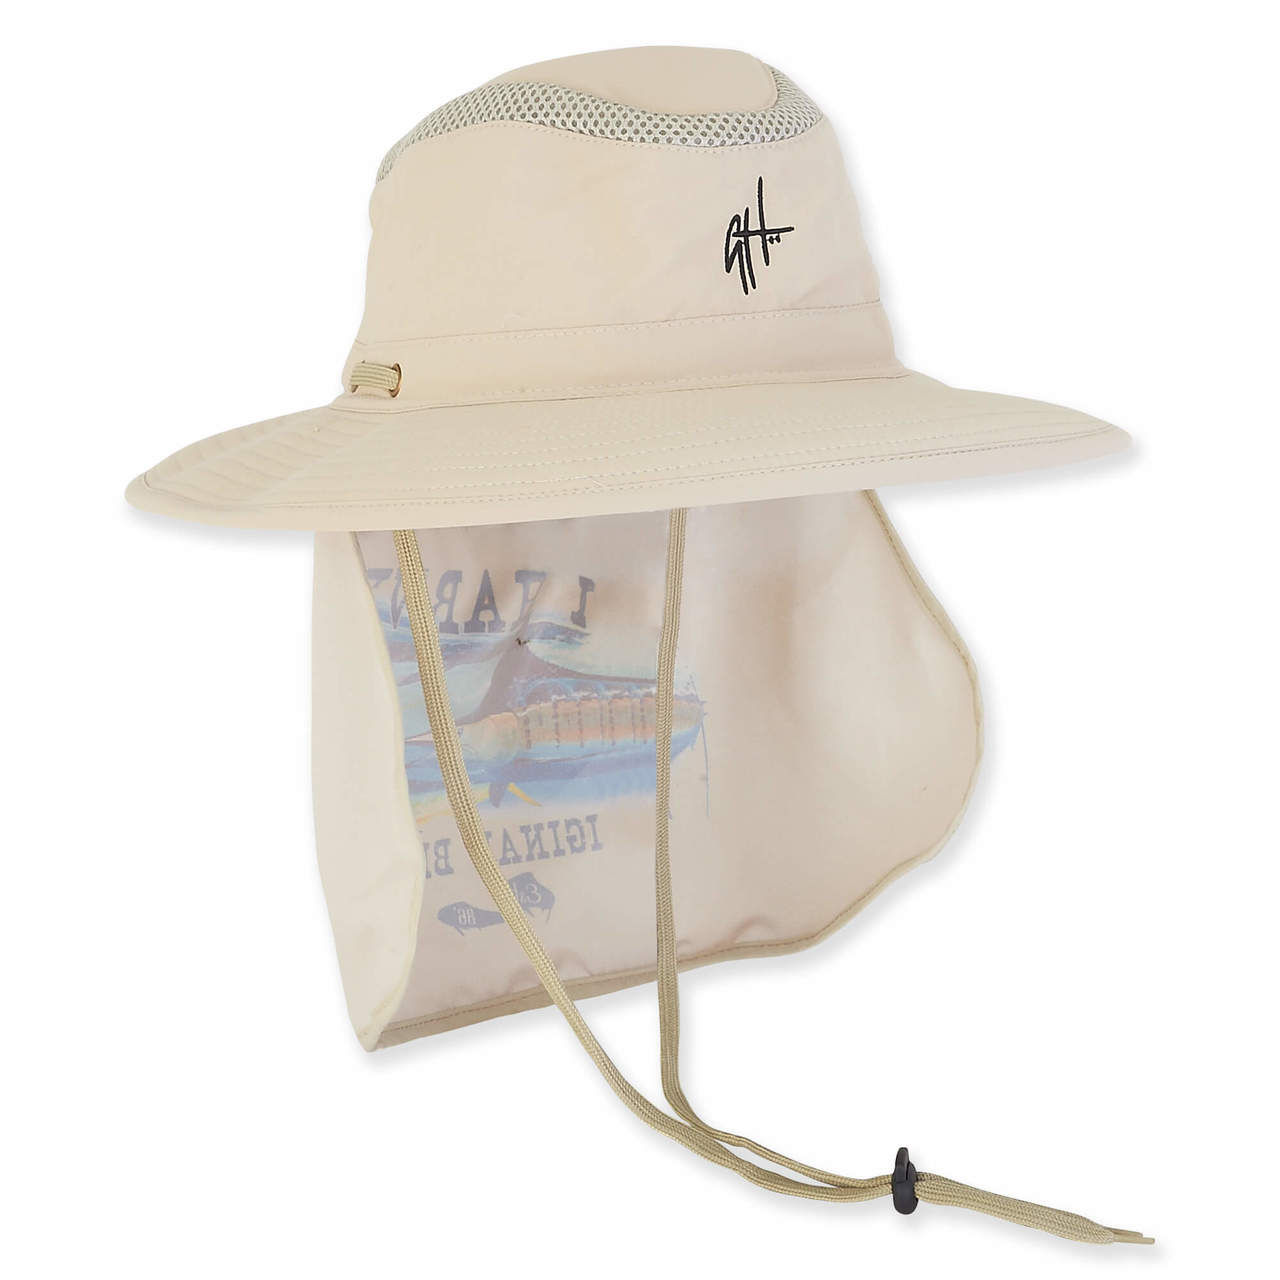 GUY HARVEY BREATHABLE NYLON HAT W SIZER   DRAWSTRING CHIN CORD - Sun ... 9ec4bcbc826a